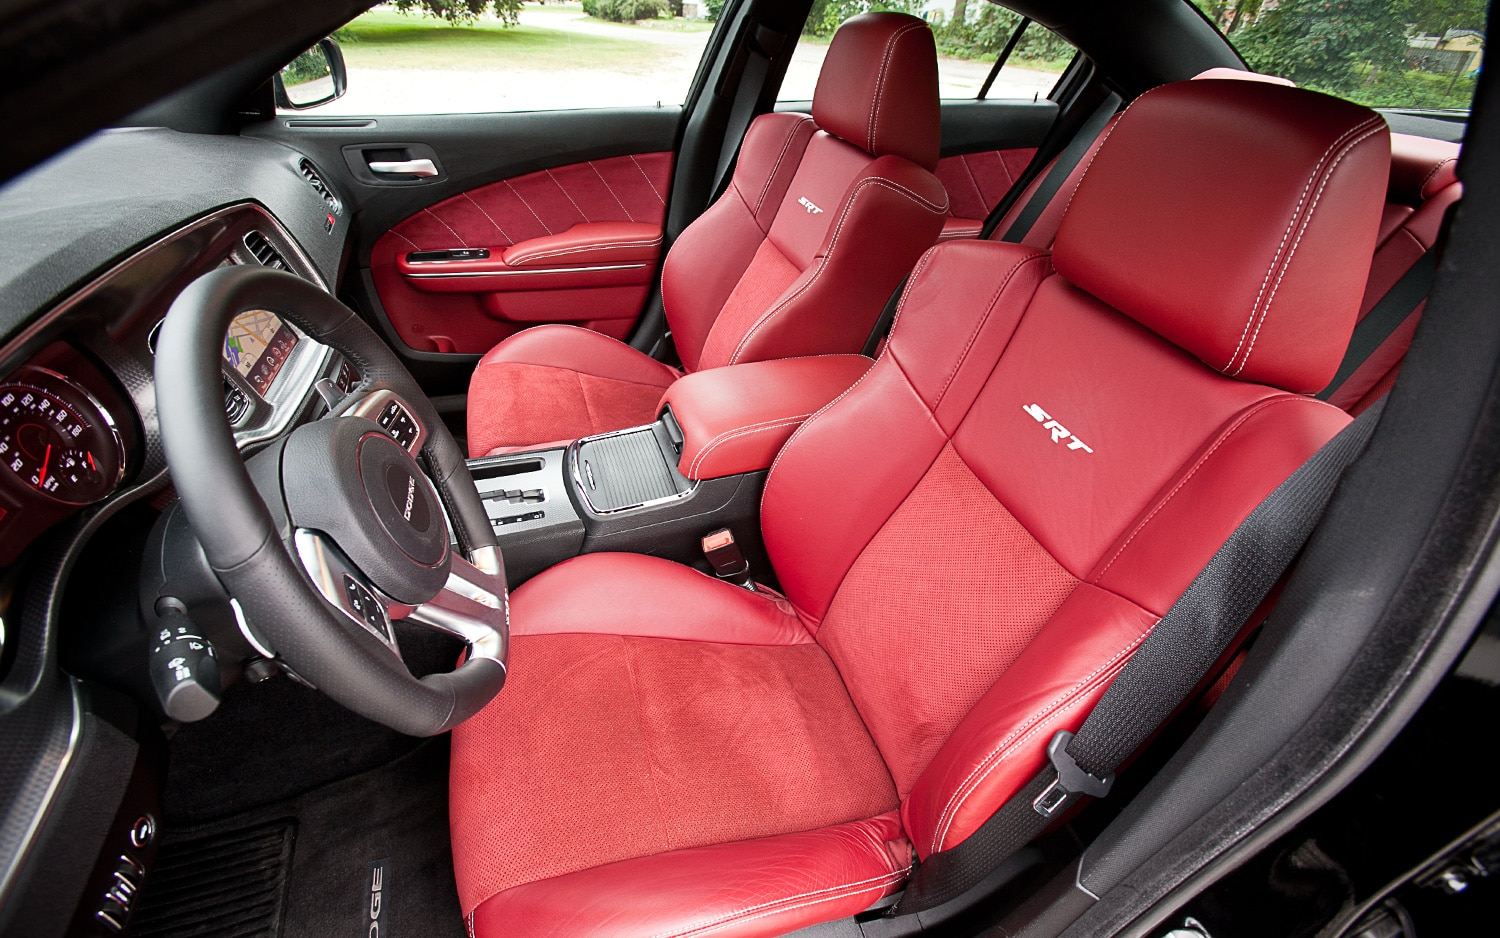 dodge charger red leather interior. Black Bedroom Furniture Sets. Home Design Ideas